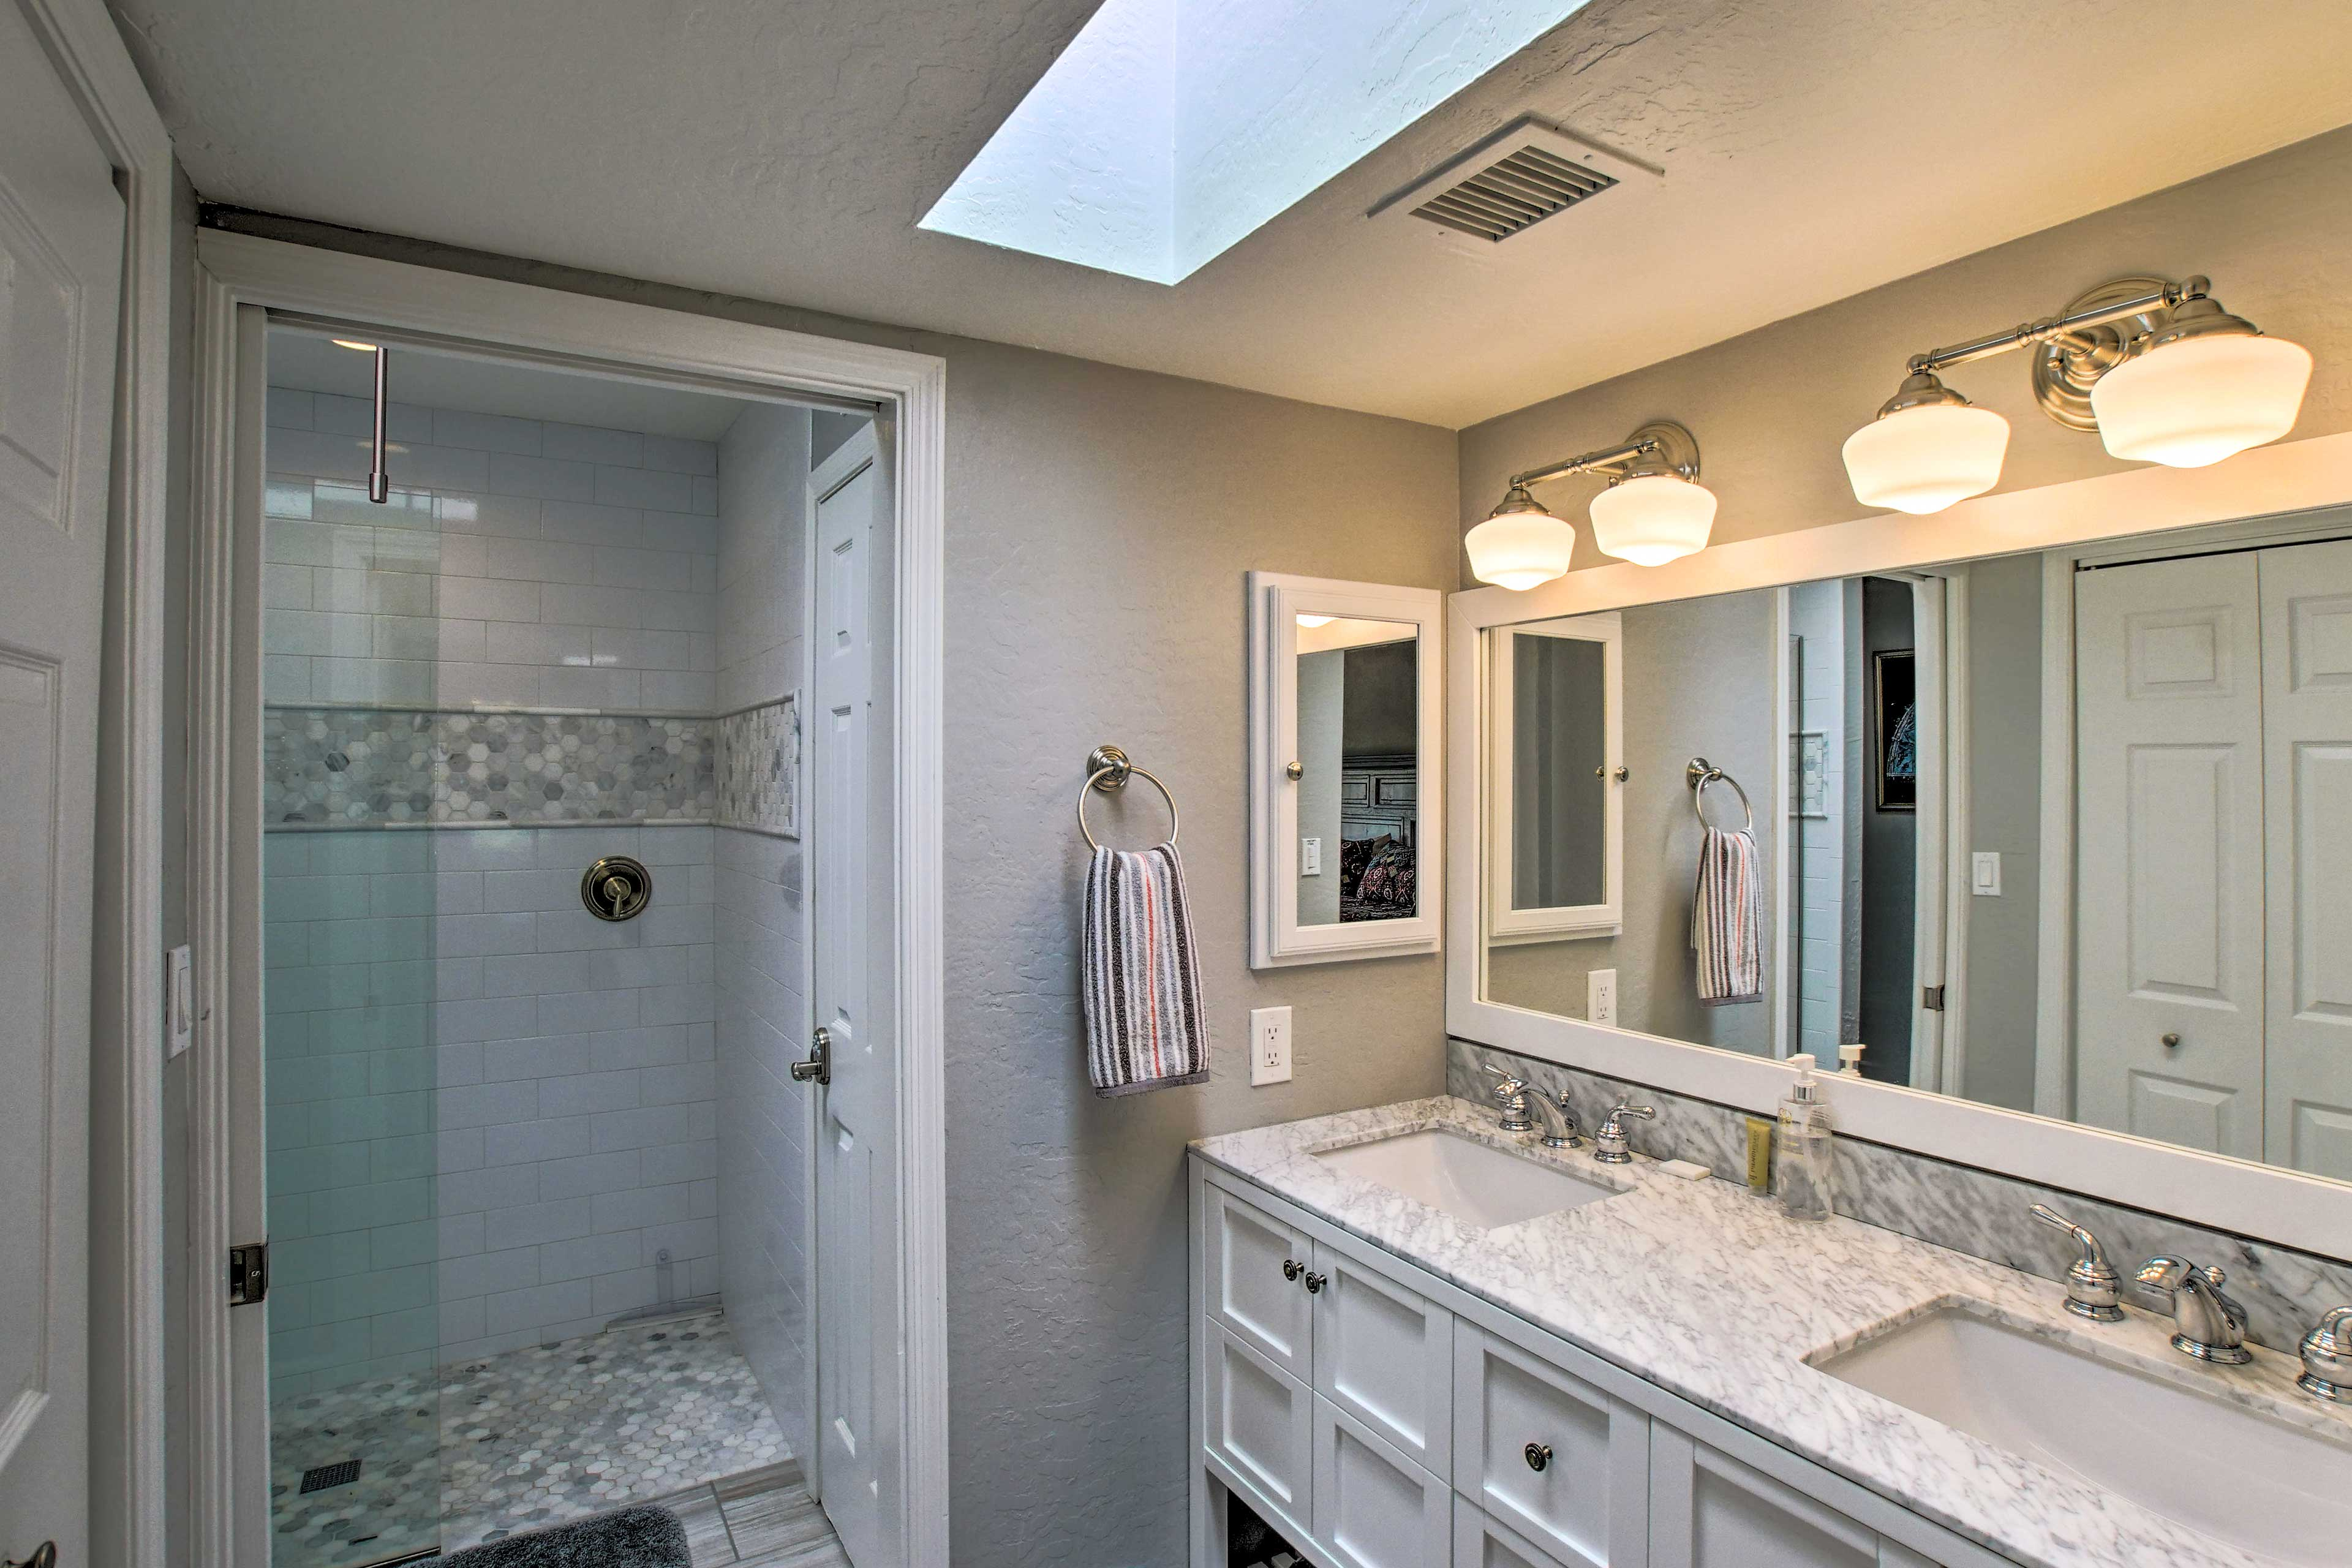 The second full bath hosts an elegant tiled shower and a double vanity.